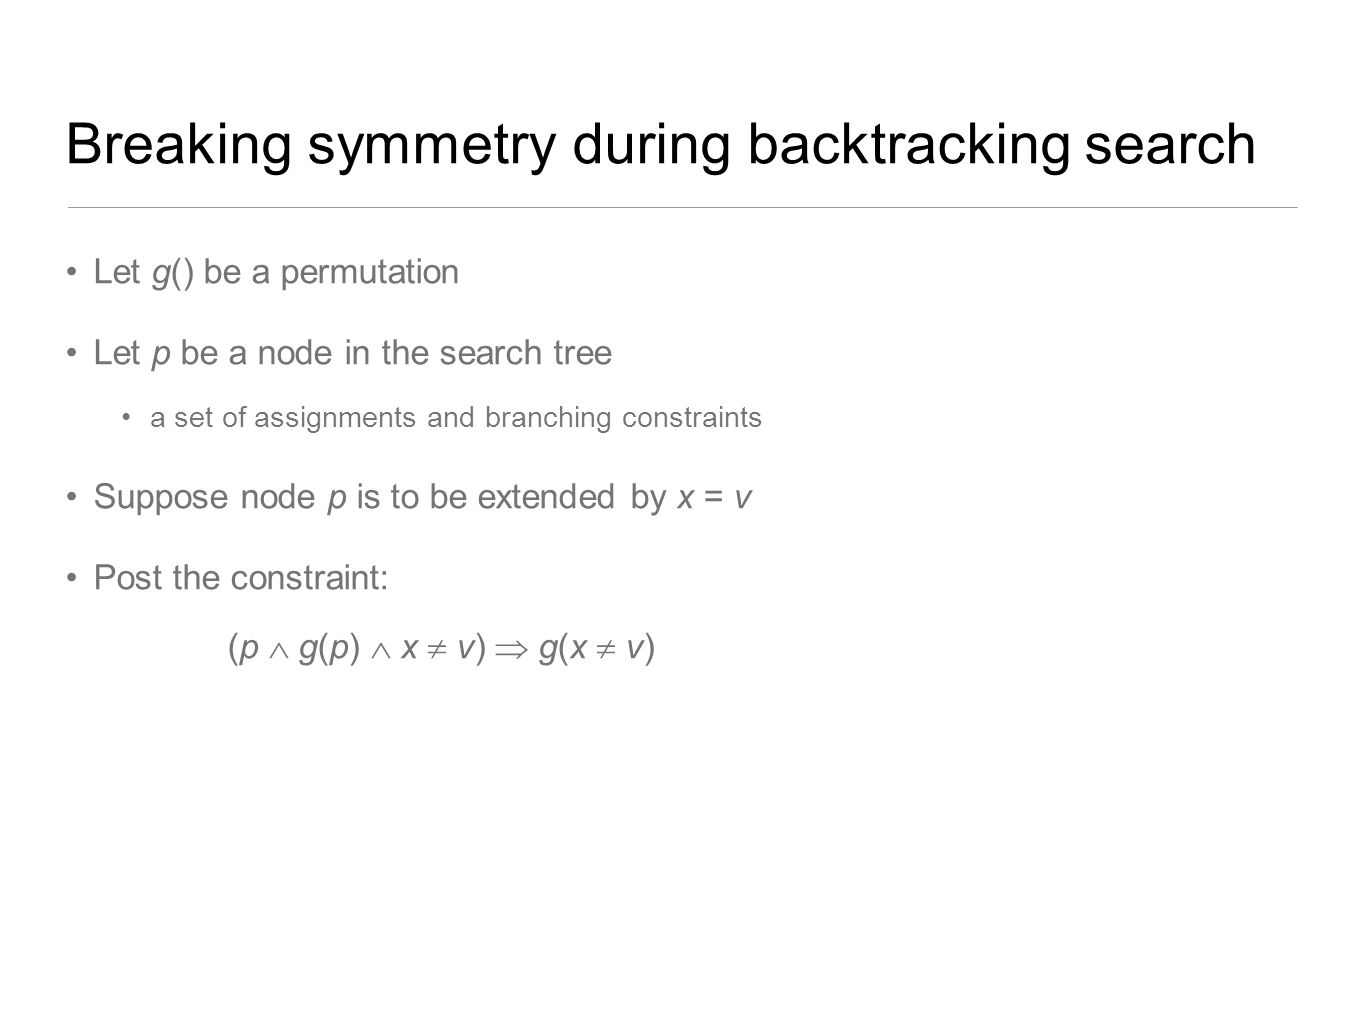 Breaking symmetry during backtracking search Let g() be a permutation Let p be a node in the search tree a set of assignments and branching constraint